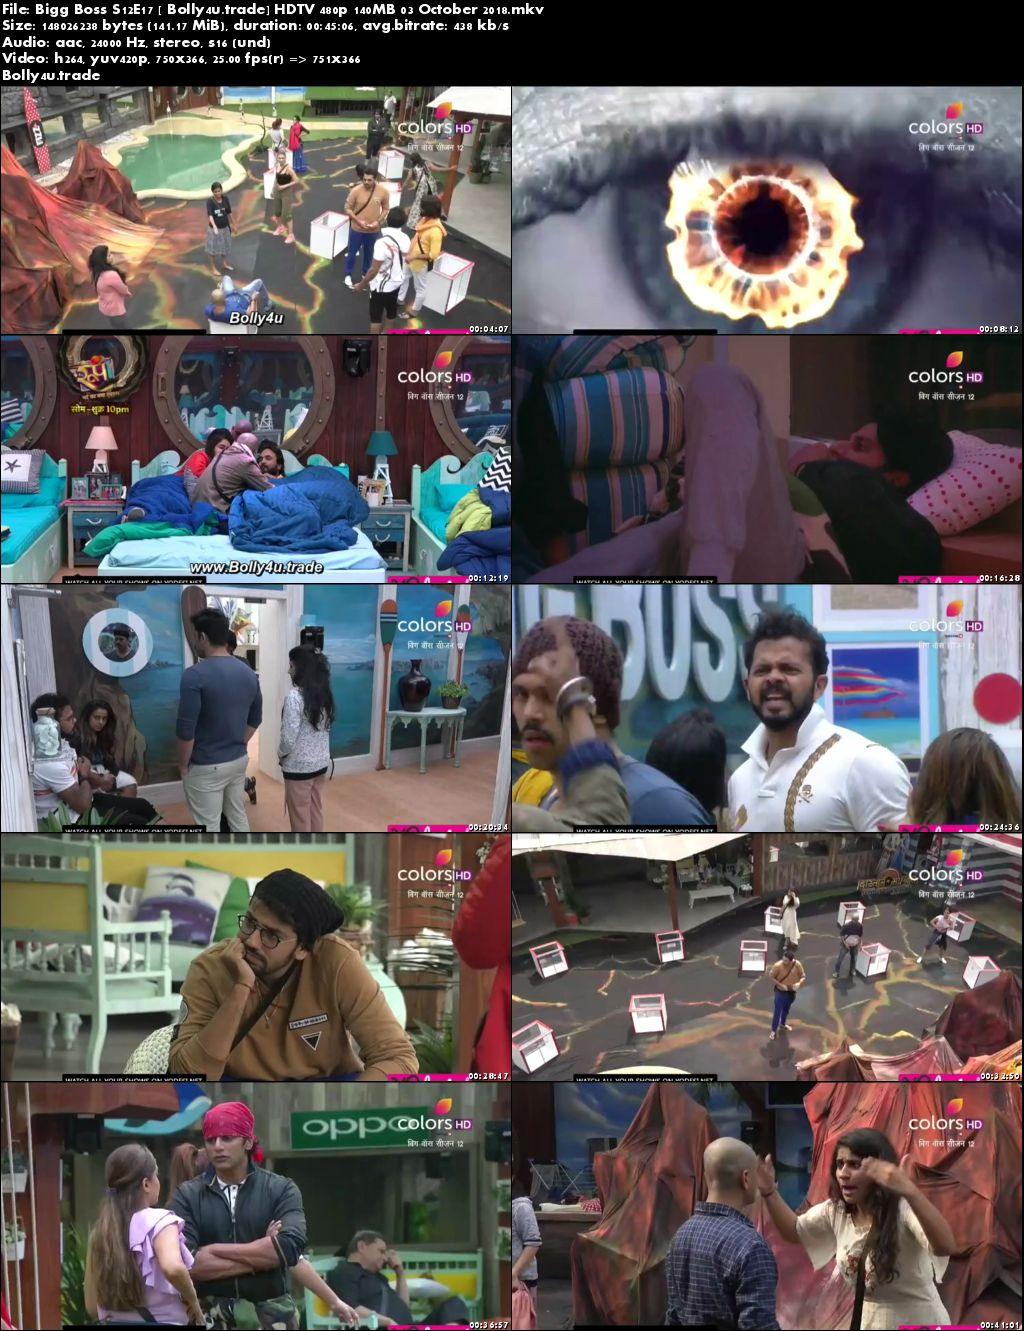 Bigg Boss S12E17 HDTV 480p 140MB 03 October 2018 Download